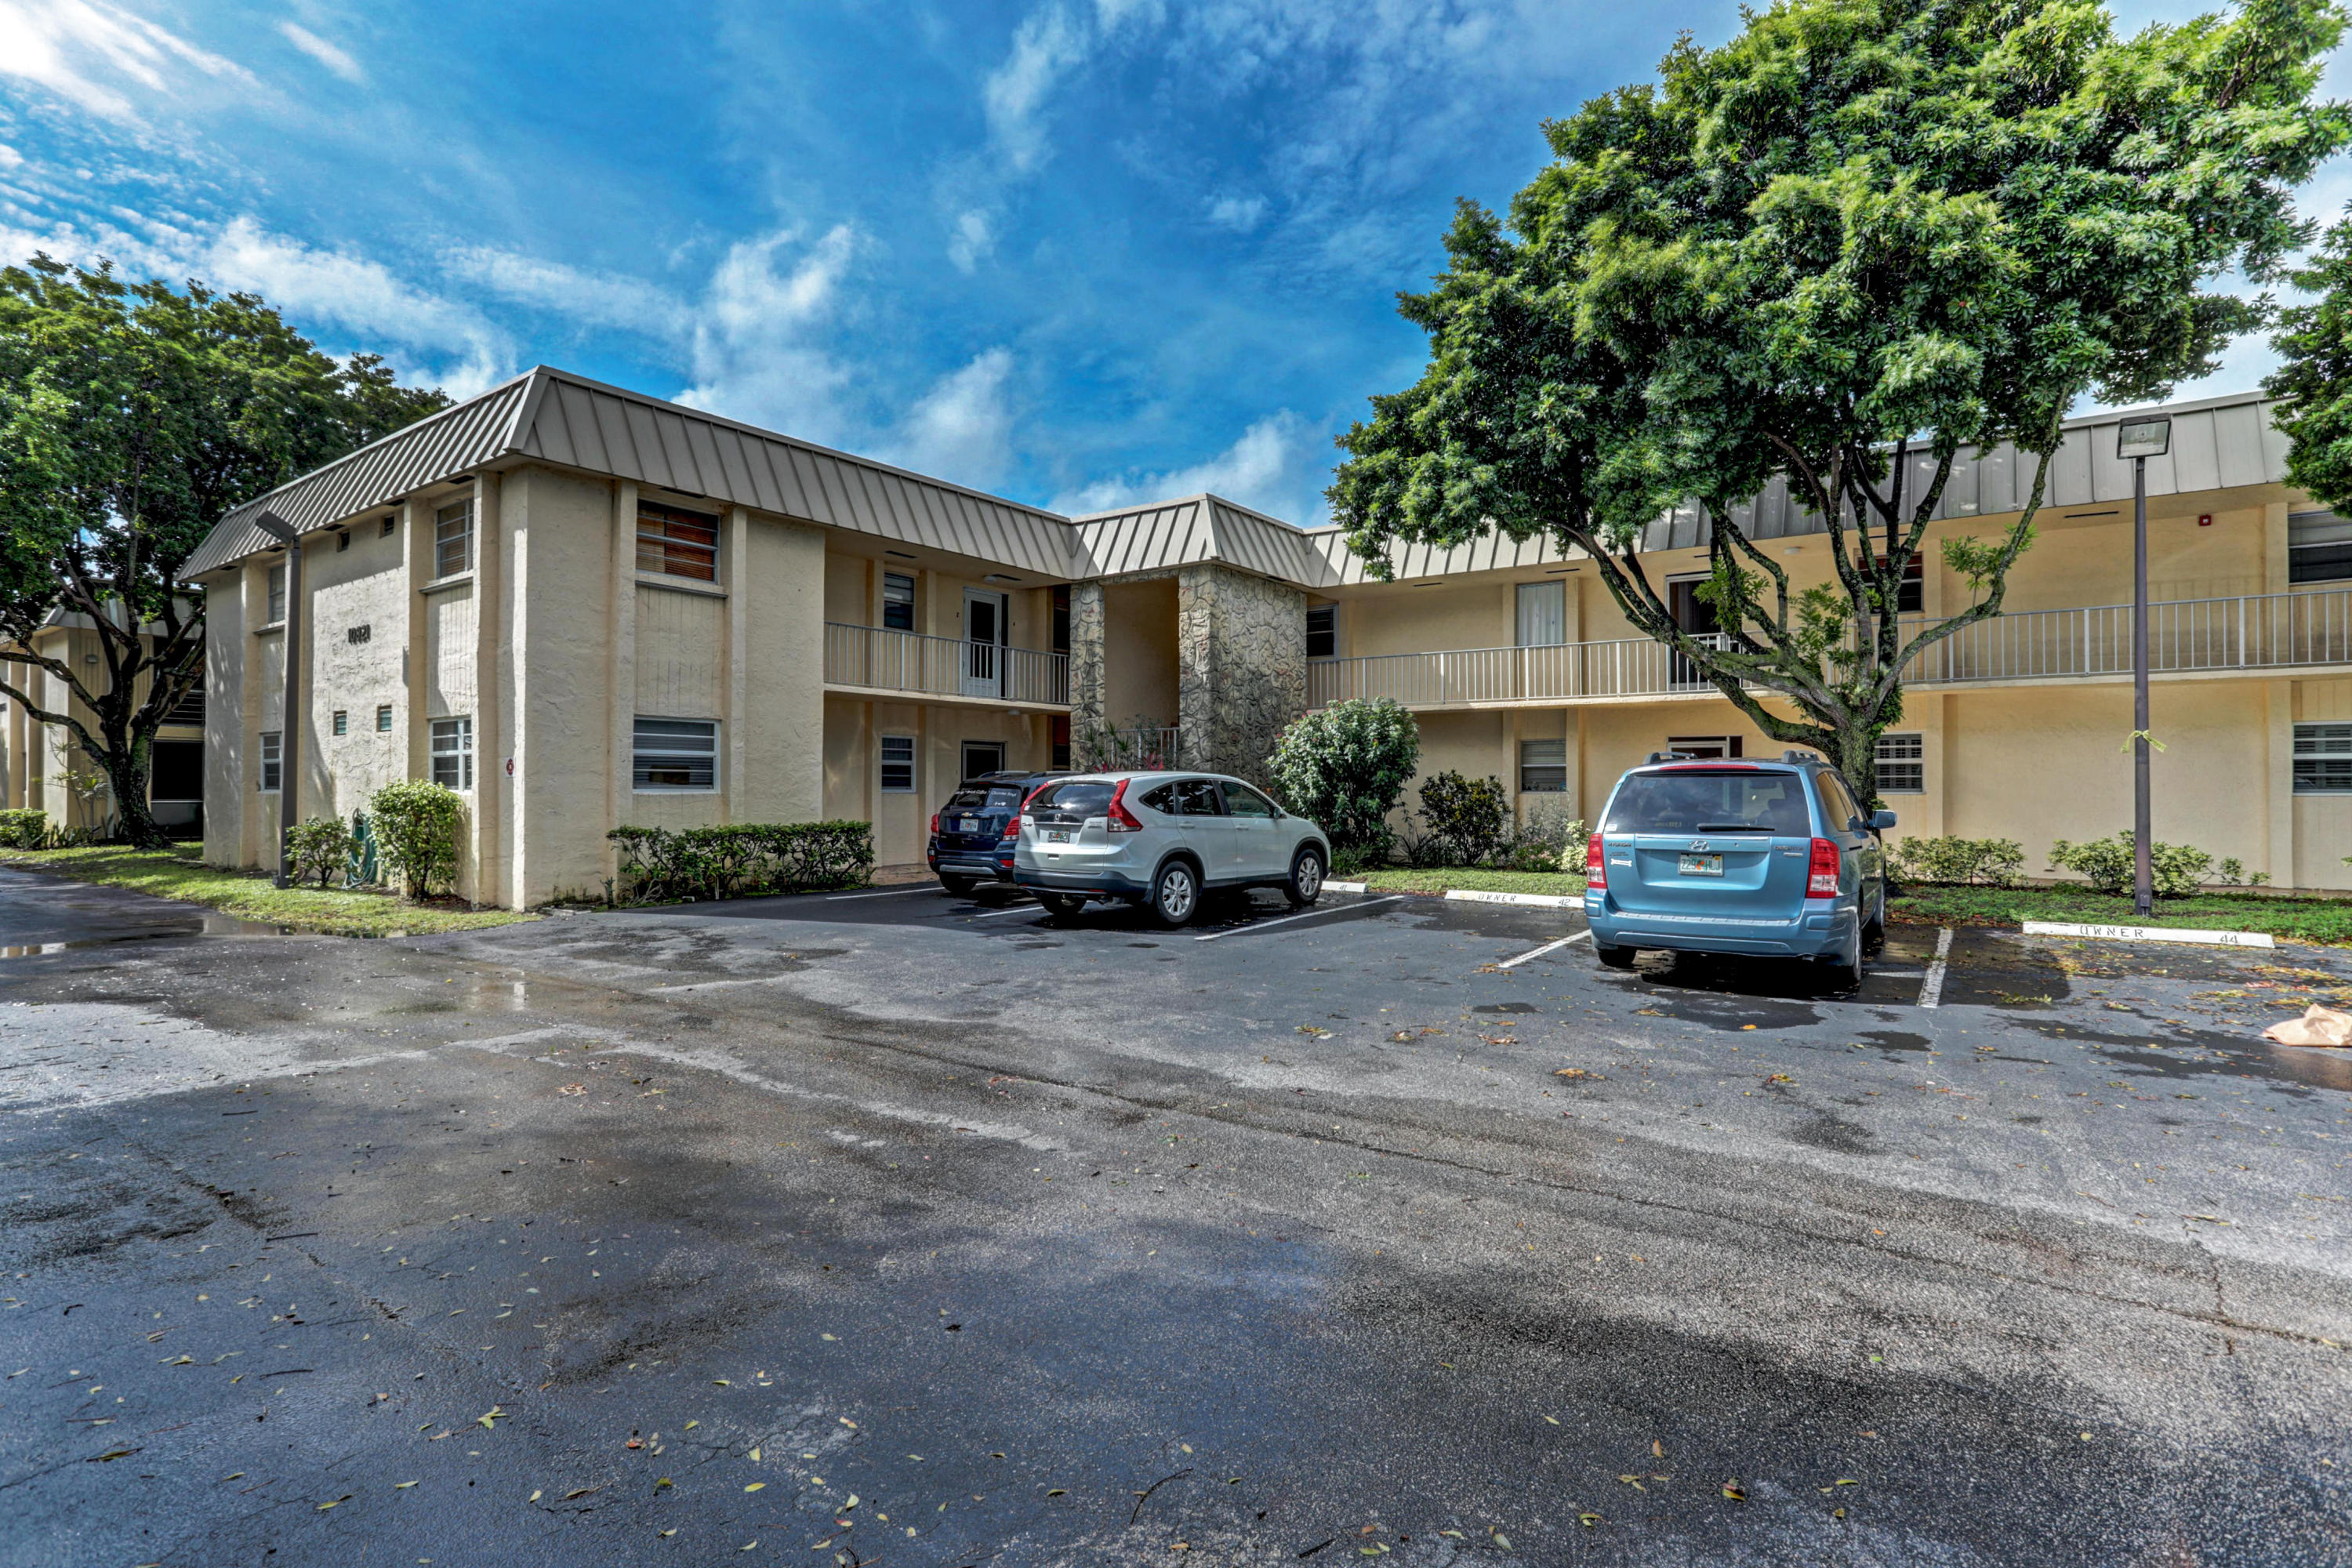 Home for sale in TRAILS END VILLAS INC CONDO LTS 5 TO 9 PT OF LTS 10 Palm Beach Gardens Florida